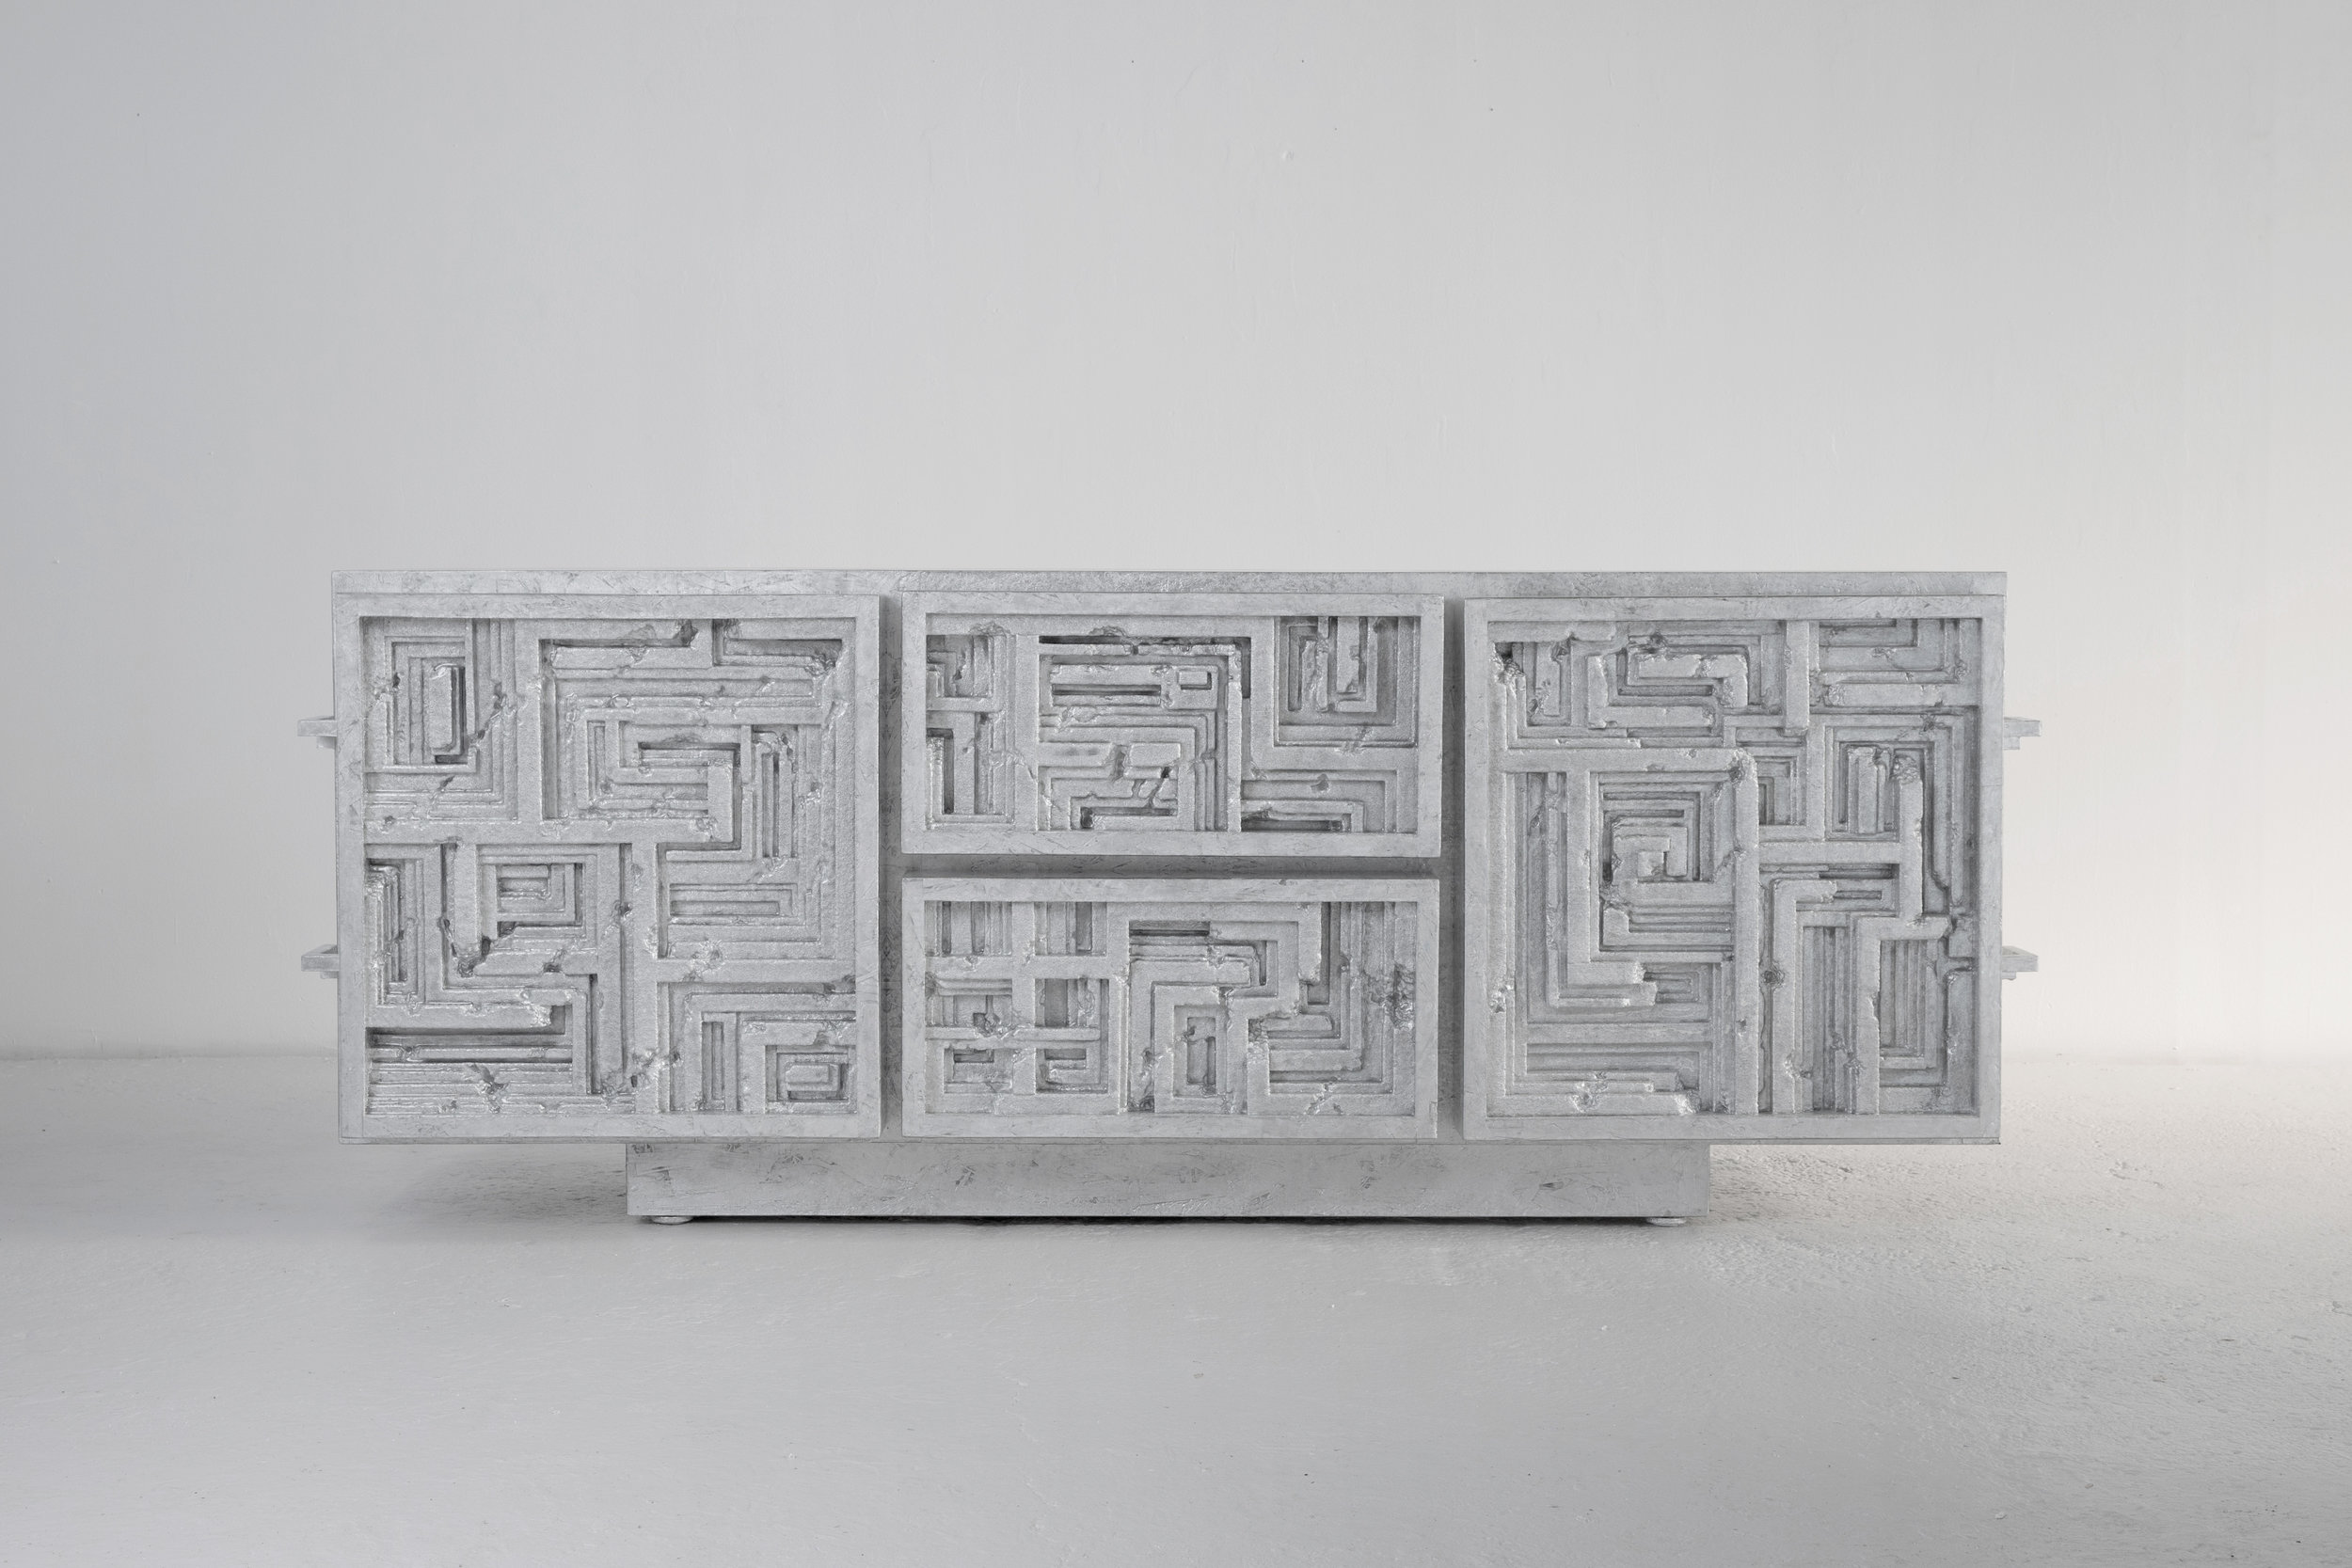 Oubliette , 2017 80 x 20 x 32 inches Wood, polystyrene, resin, and leather